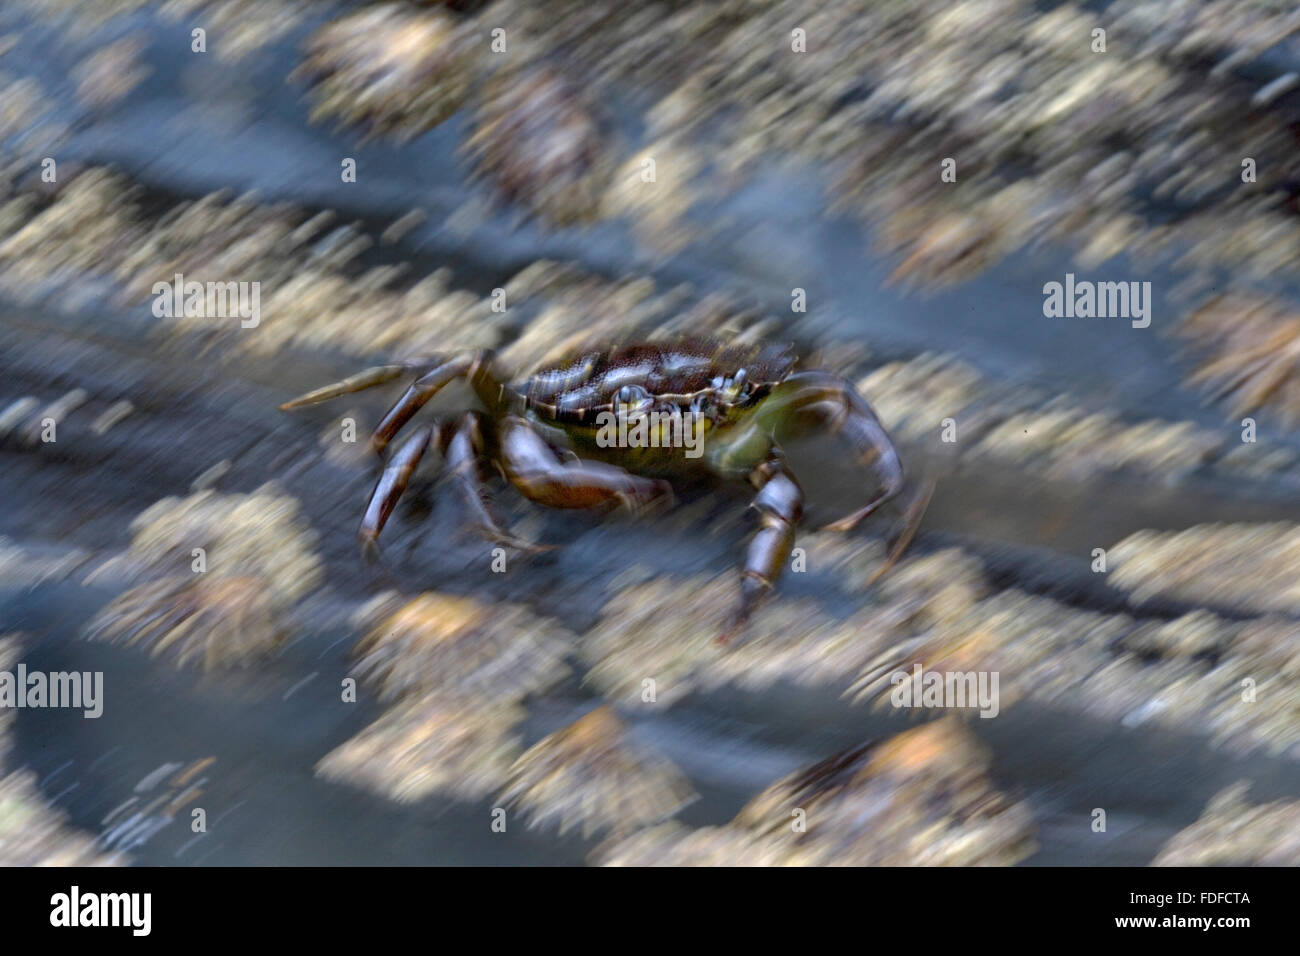 Green Shore Crab (Carcinus maenas) scuttling across rocks covered with limpets, blurred motion, at Harlyn Bay, Cornwall, - Stock Image